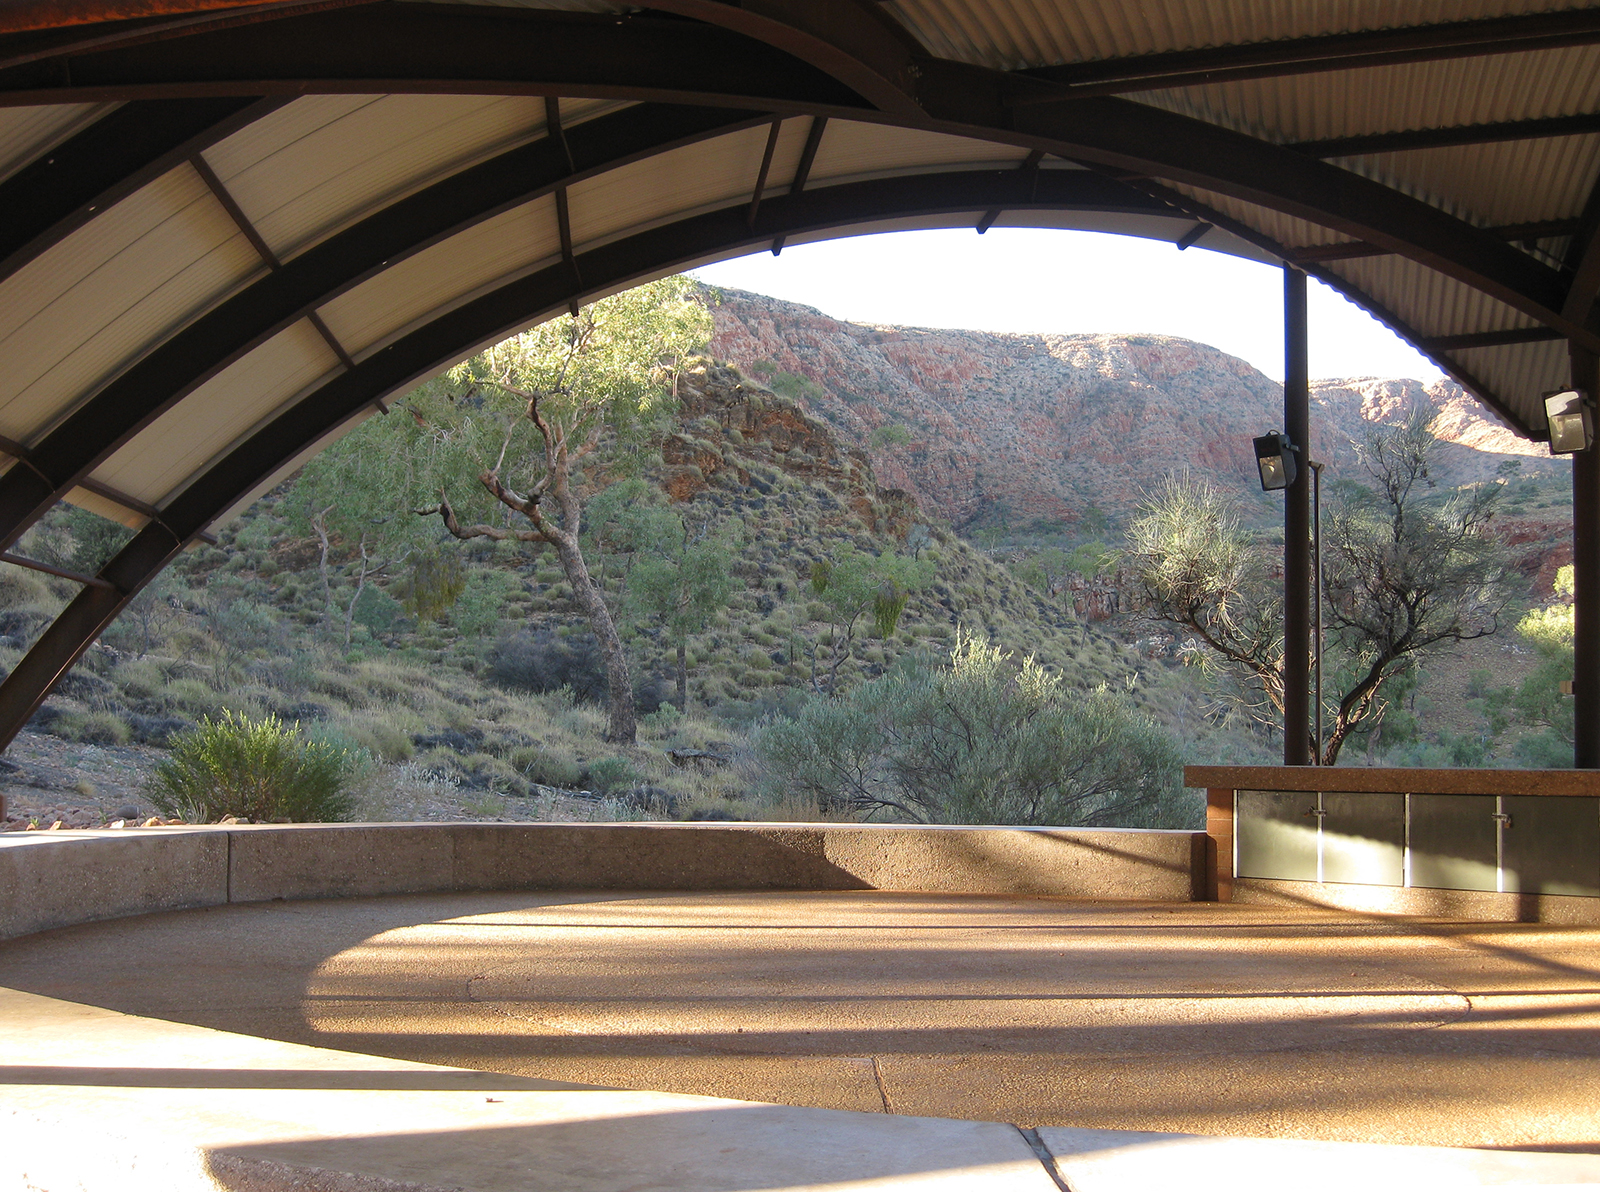 02_Susan Dugdale and Associates_Ormiston shelter and lookout.jpg